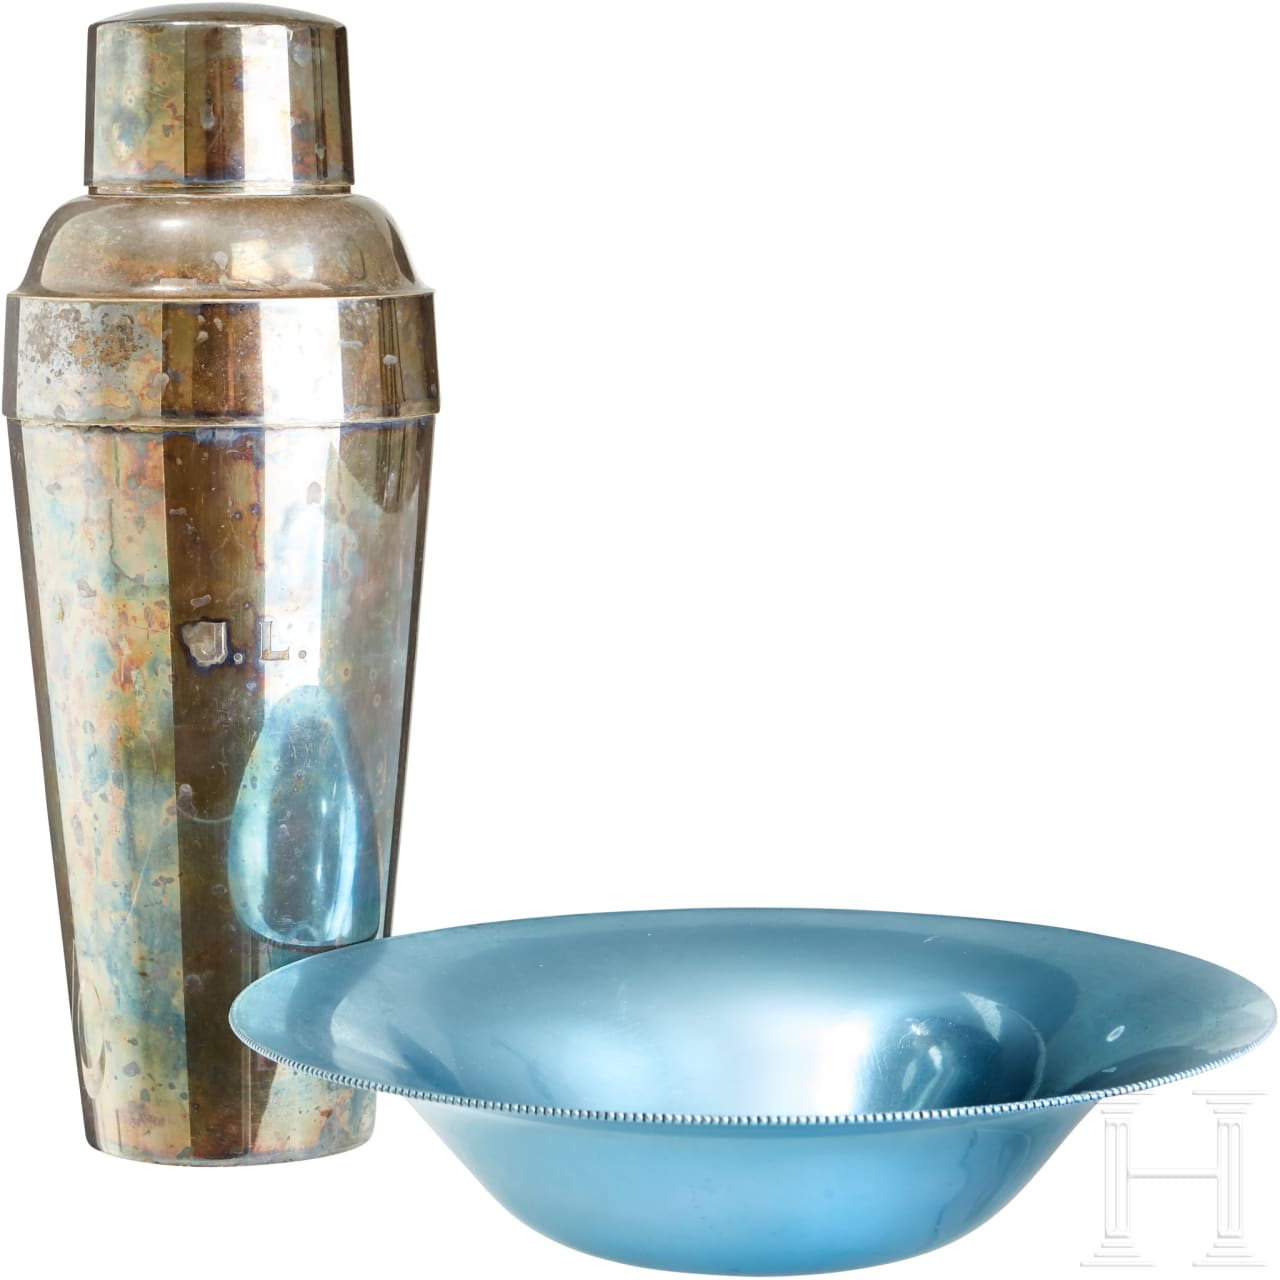 A Cocktail Shaker and Blue Bowl